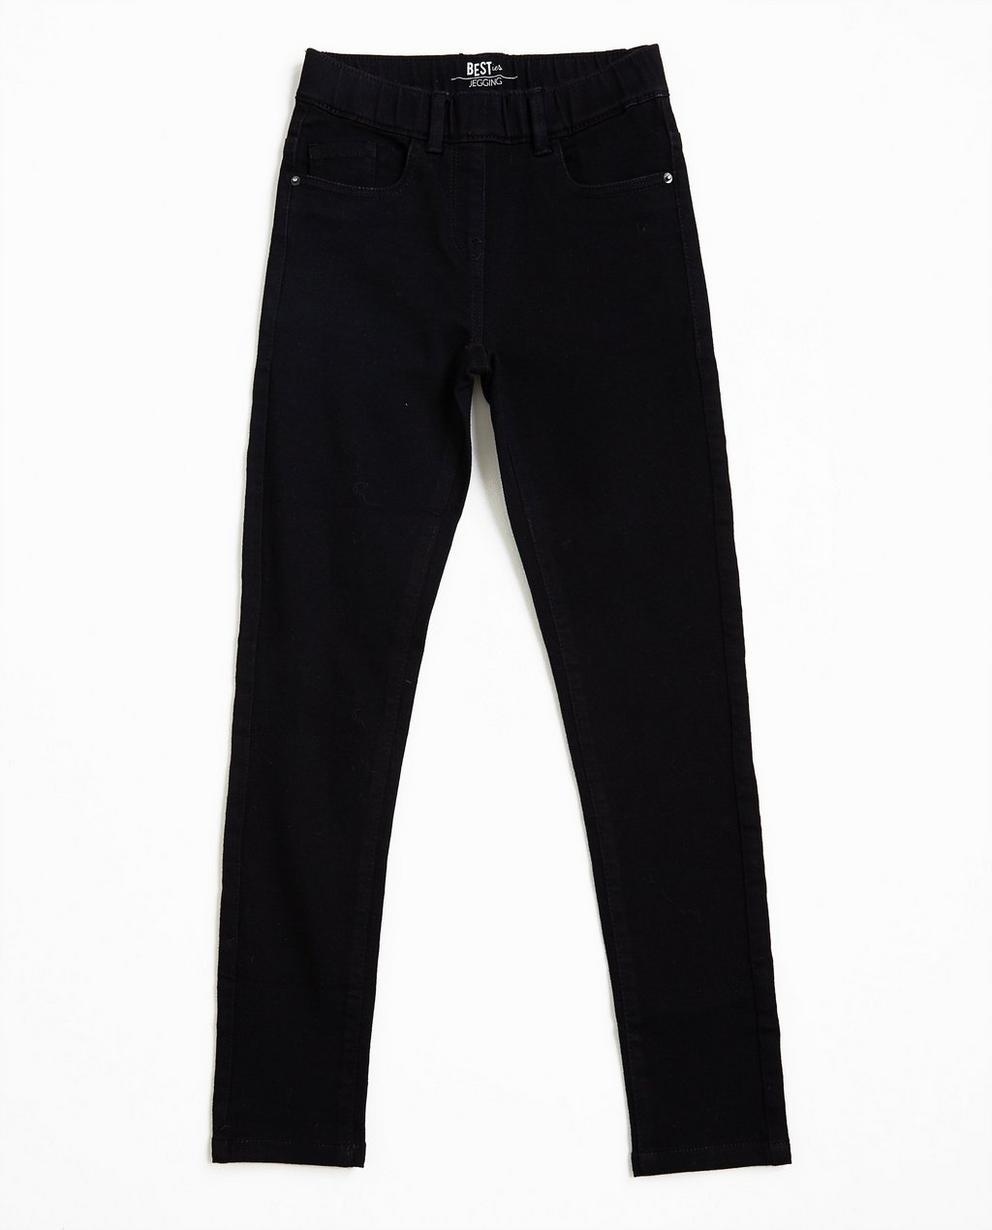 Jeggings noirs stretchy - BESTies - Besties